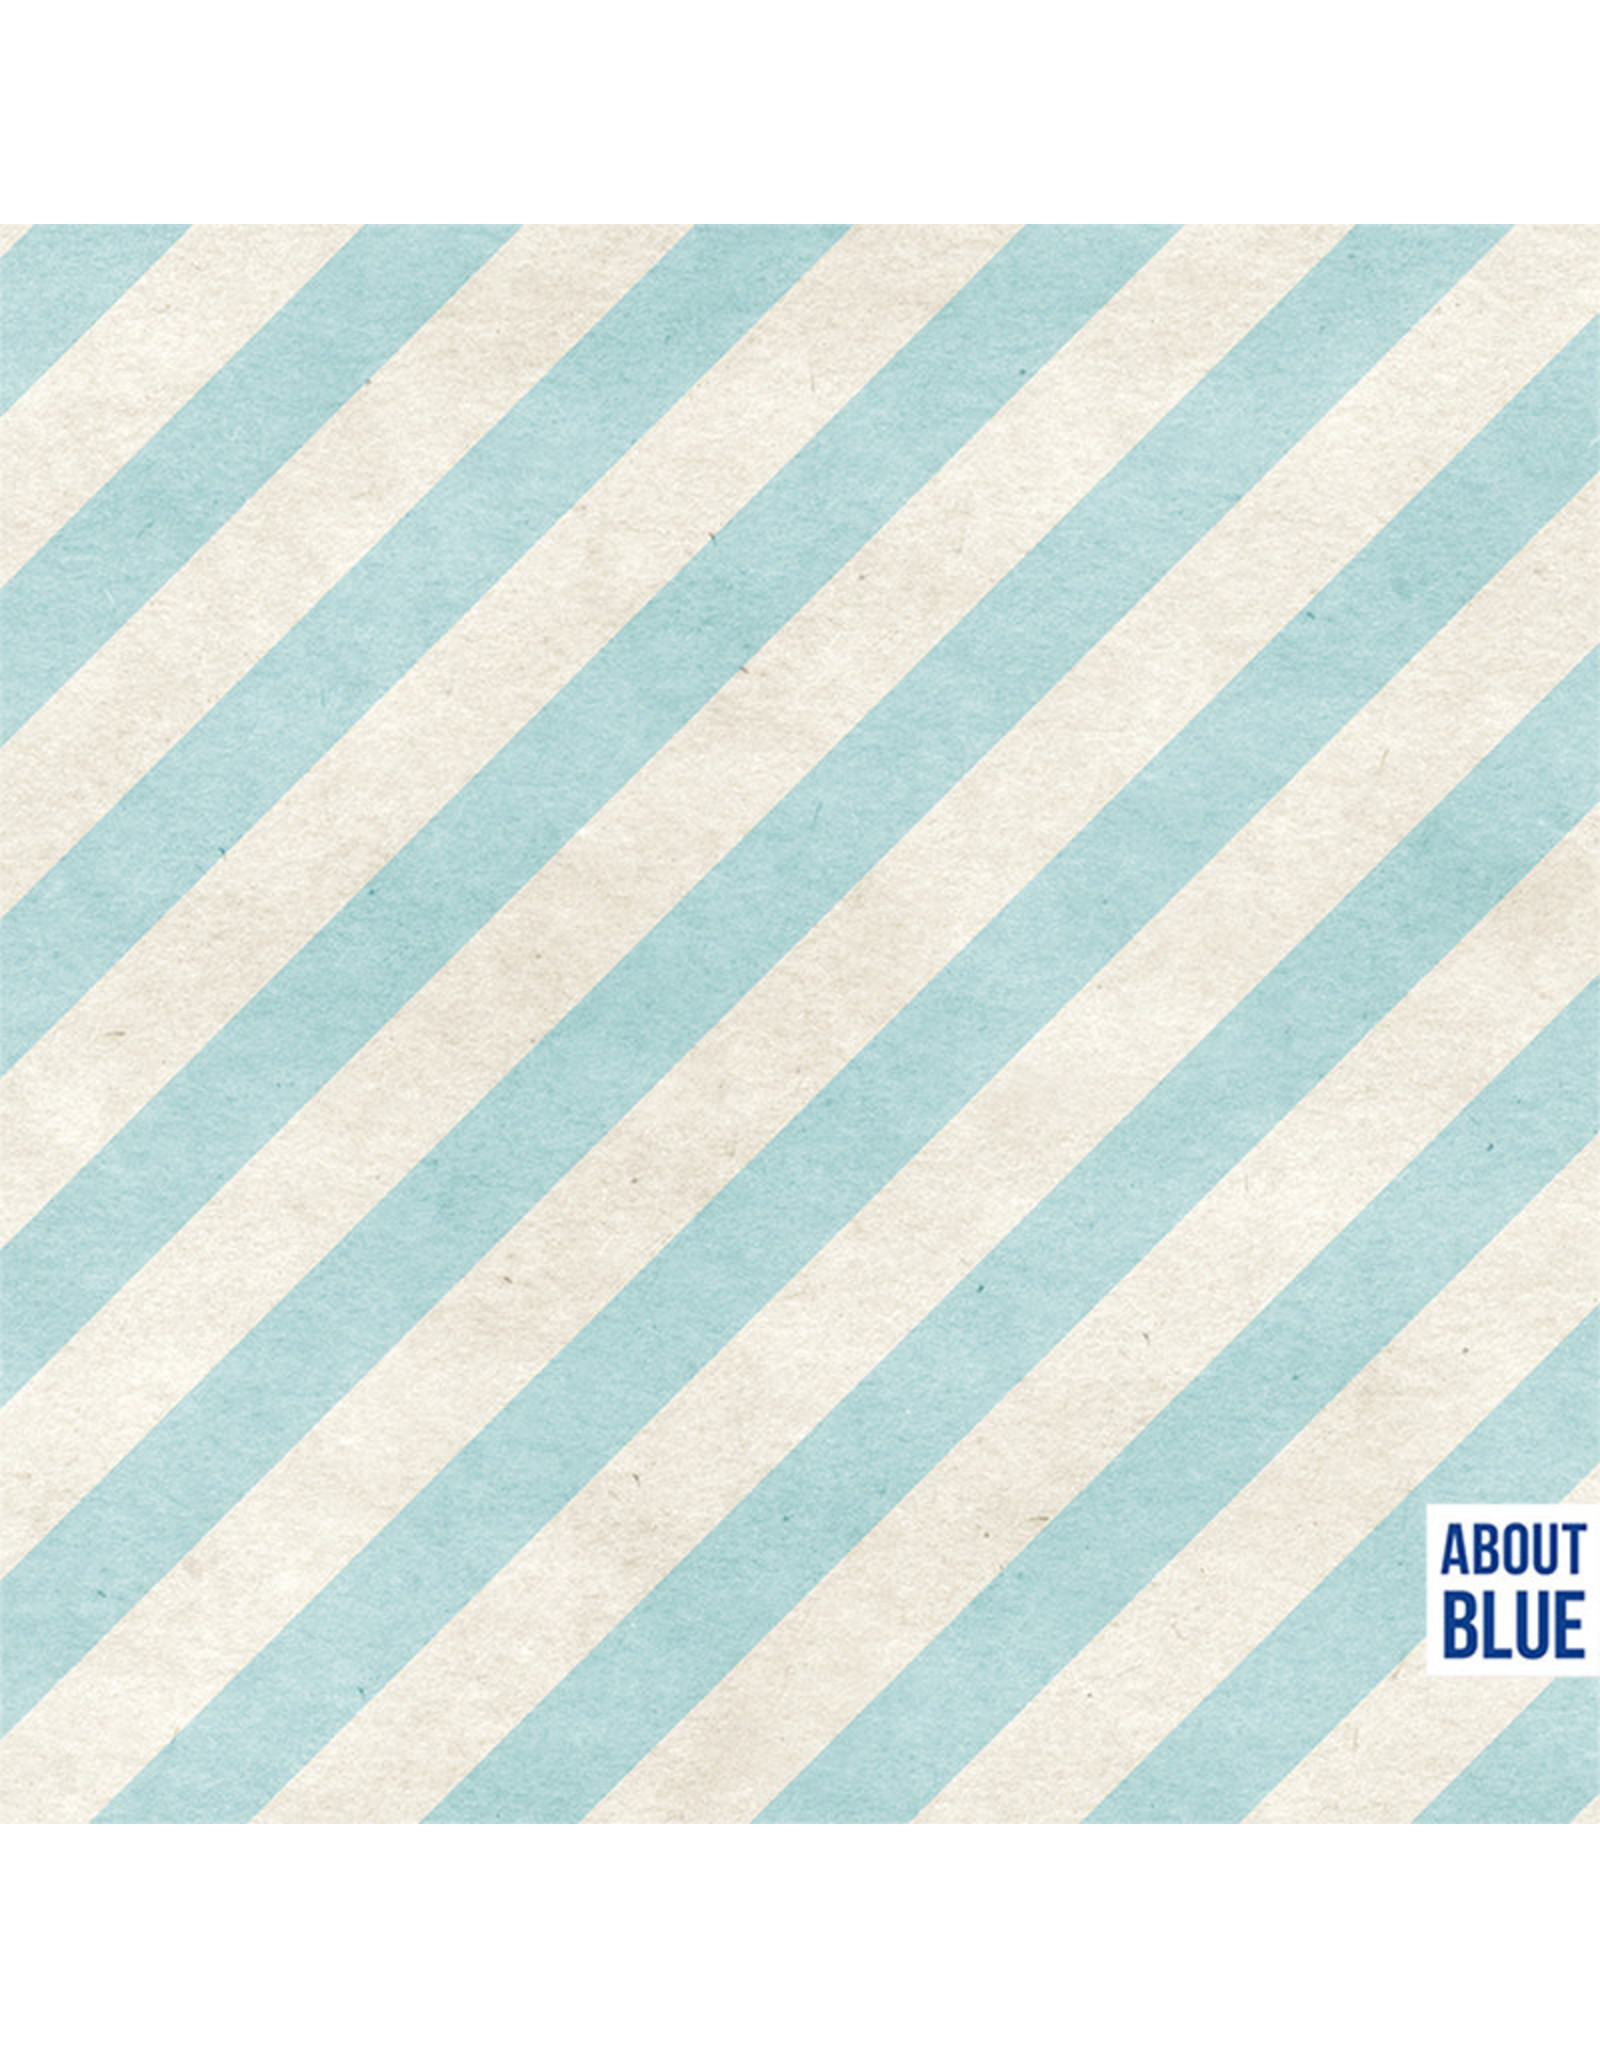 About Blue Fabrics French terry diablue